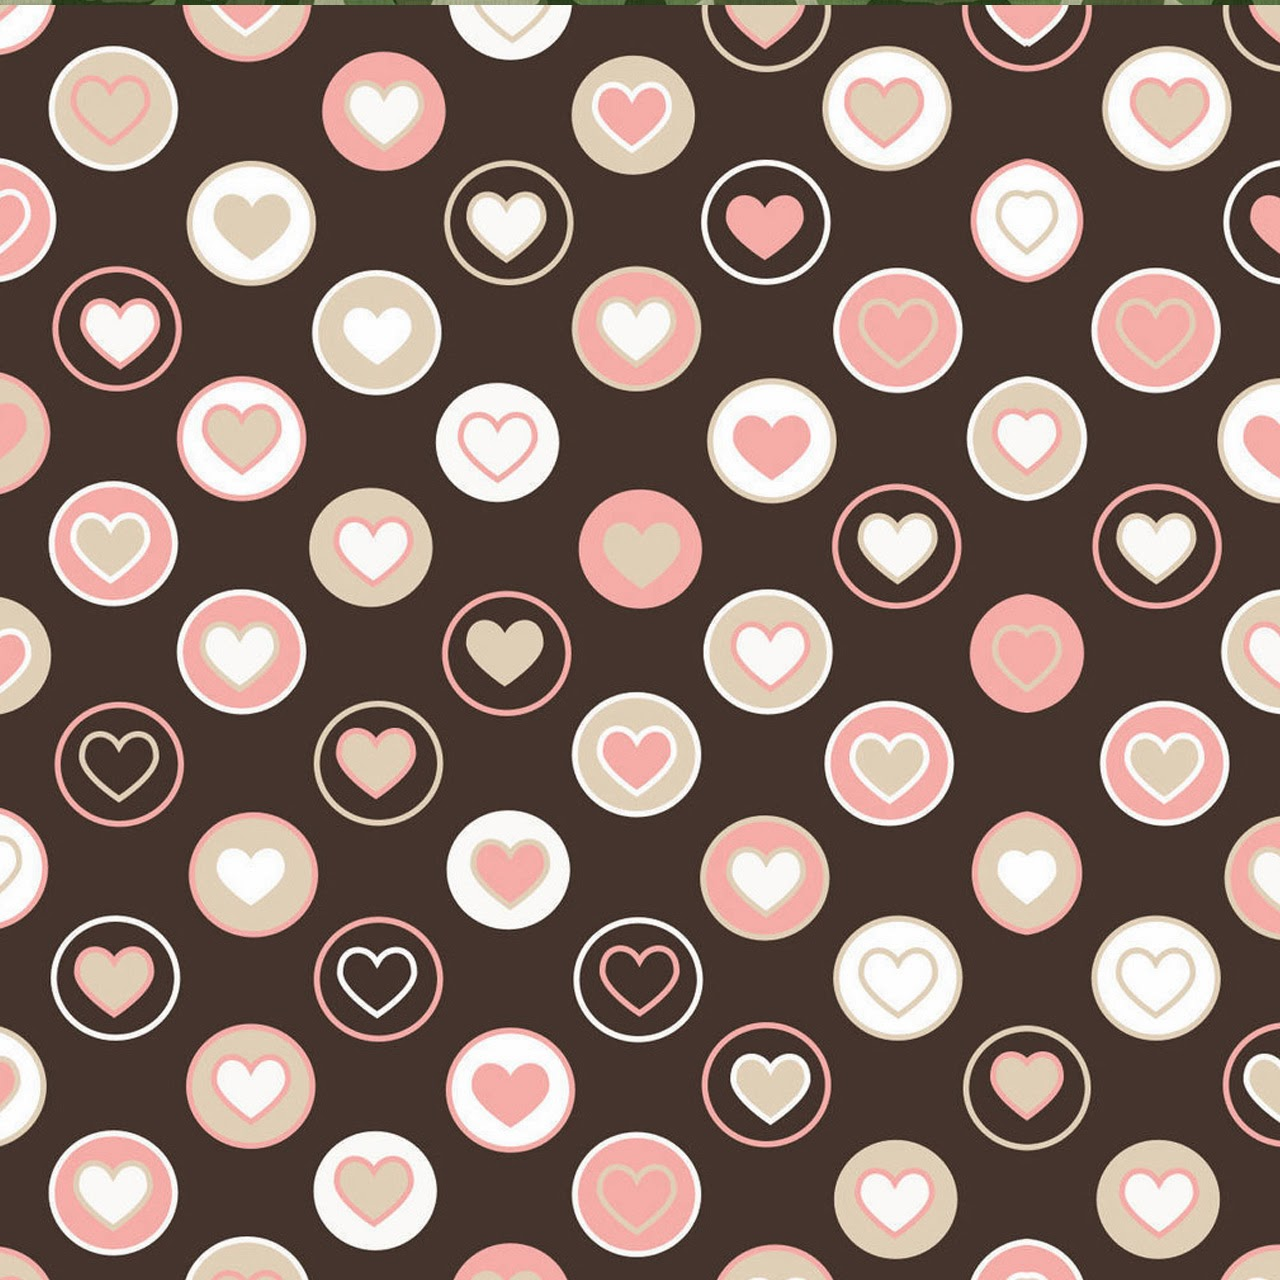 Hearts Wallpapers, part 5